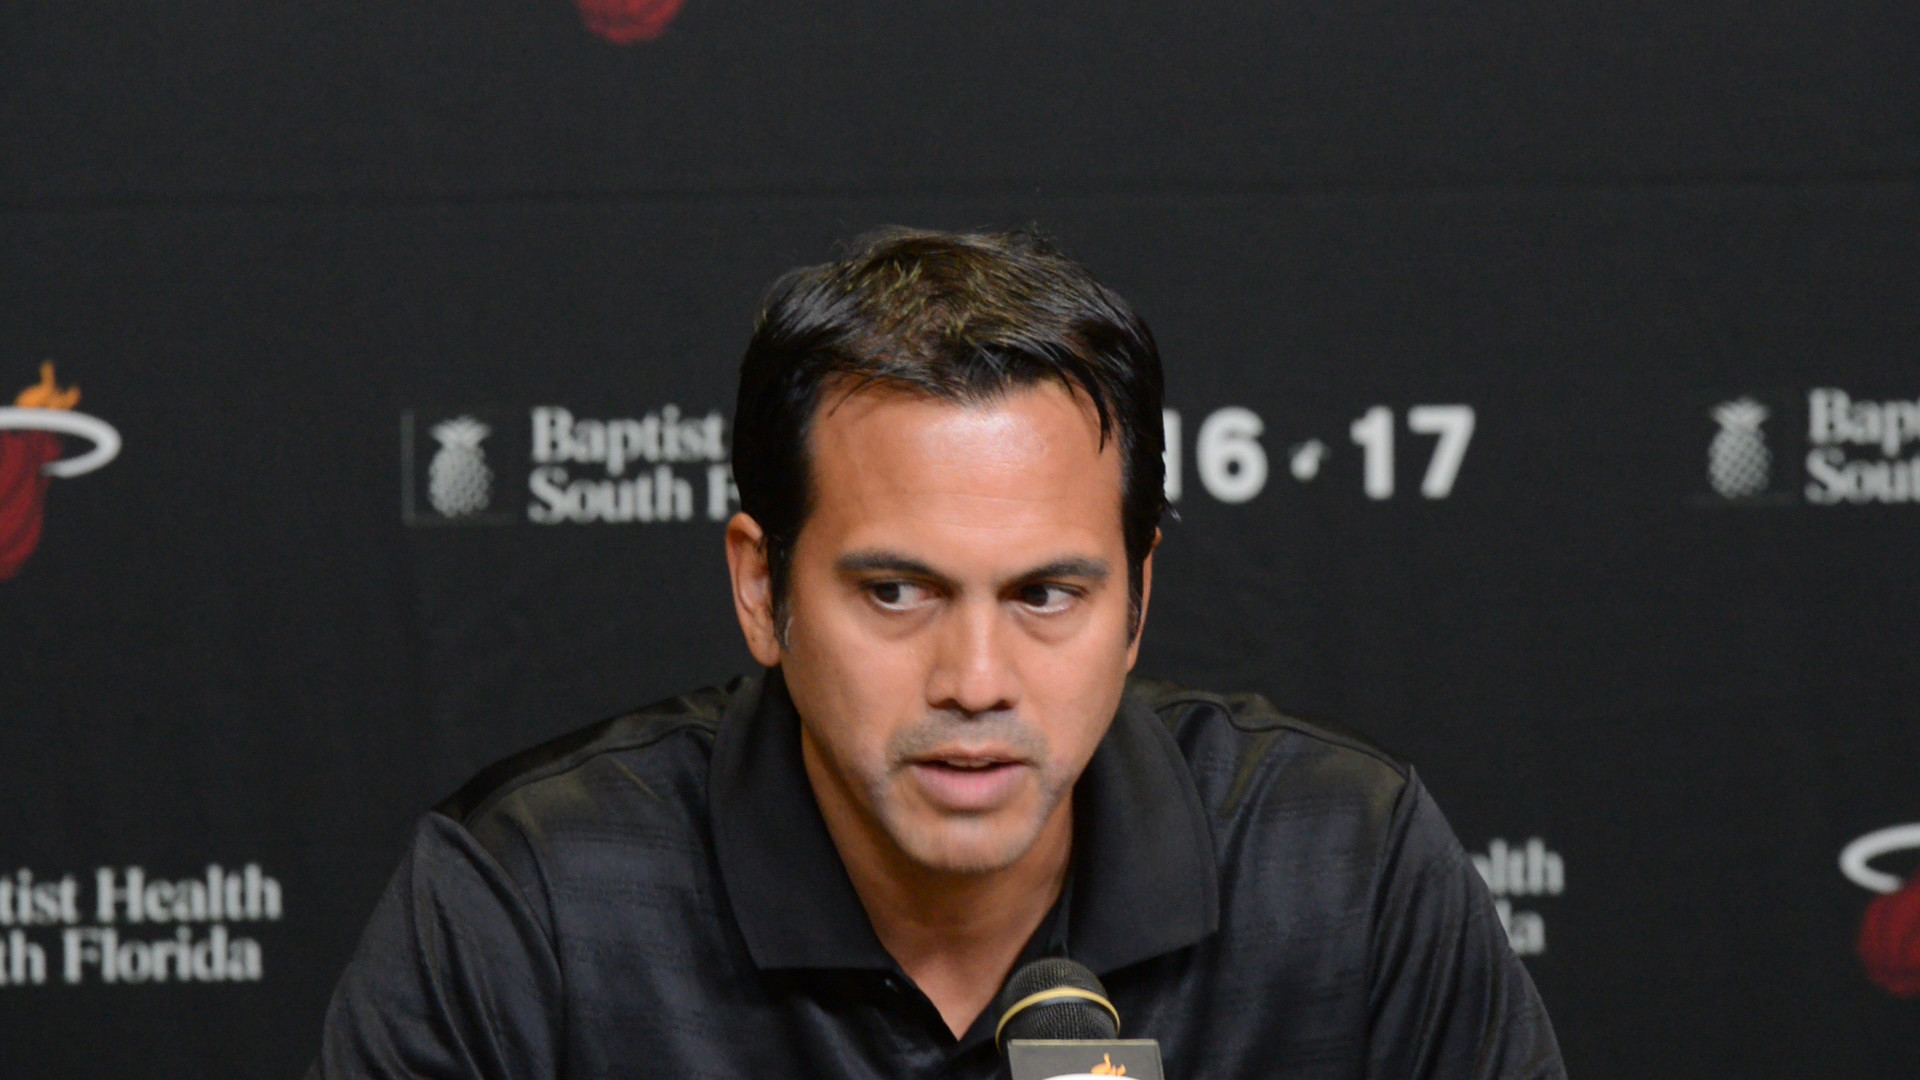 Fl-miami-heat-spoelstra-big-3-move-forward-20160926-video